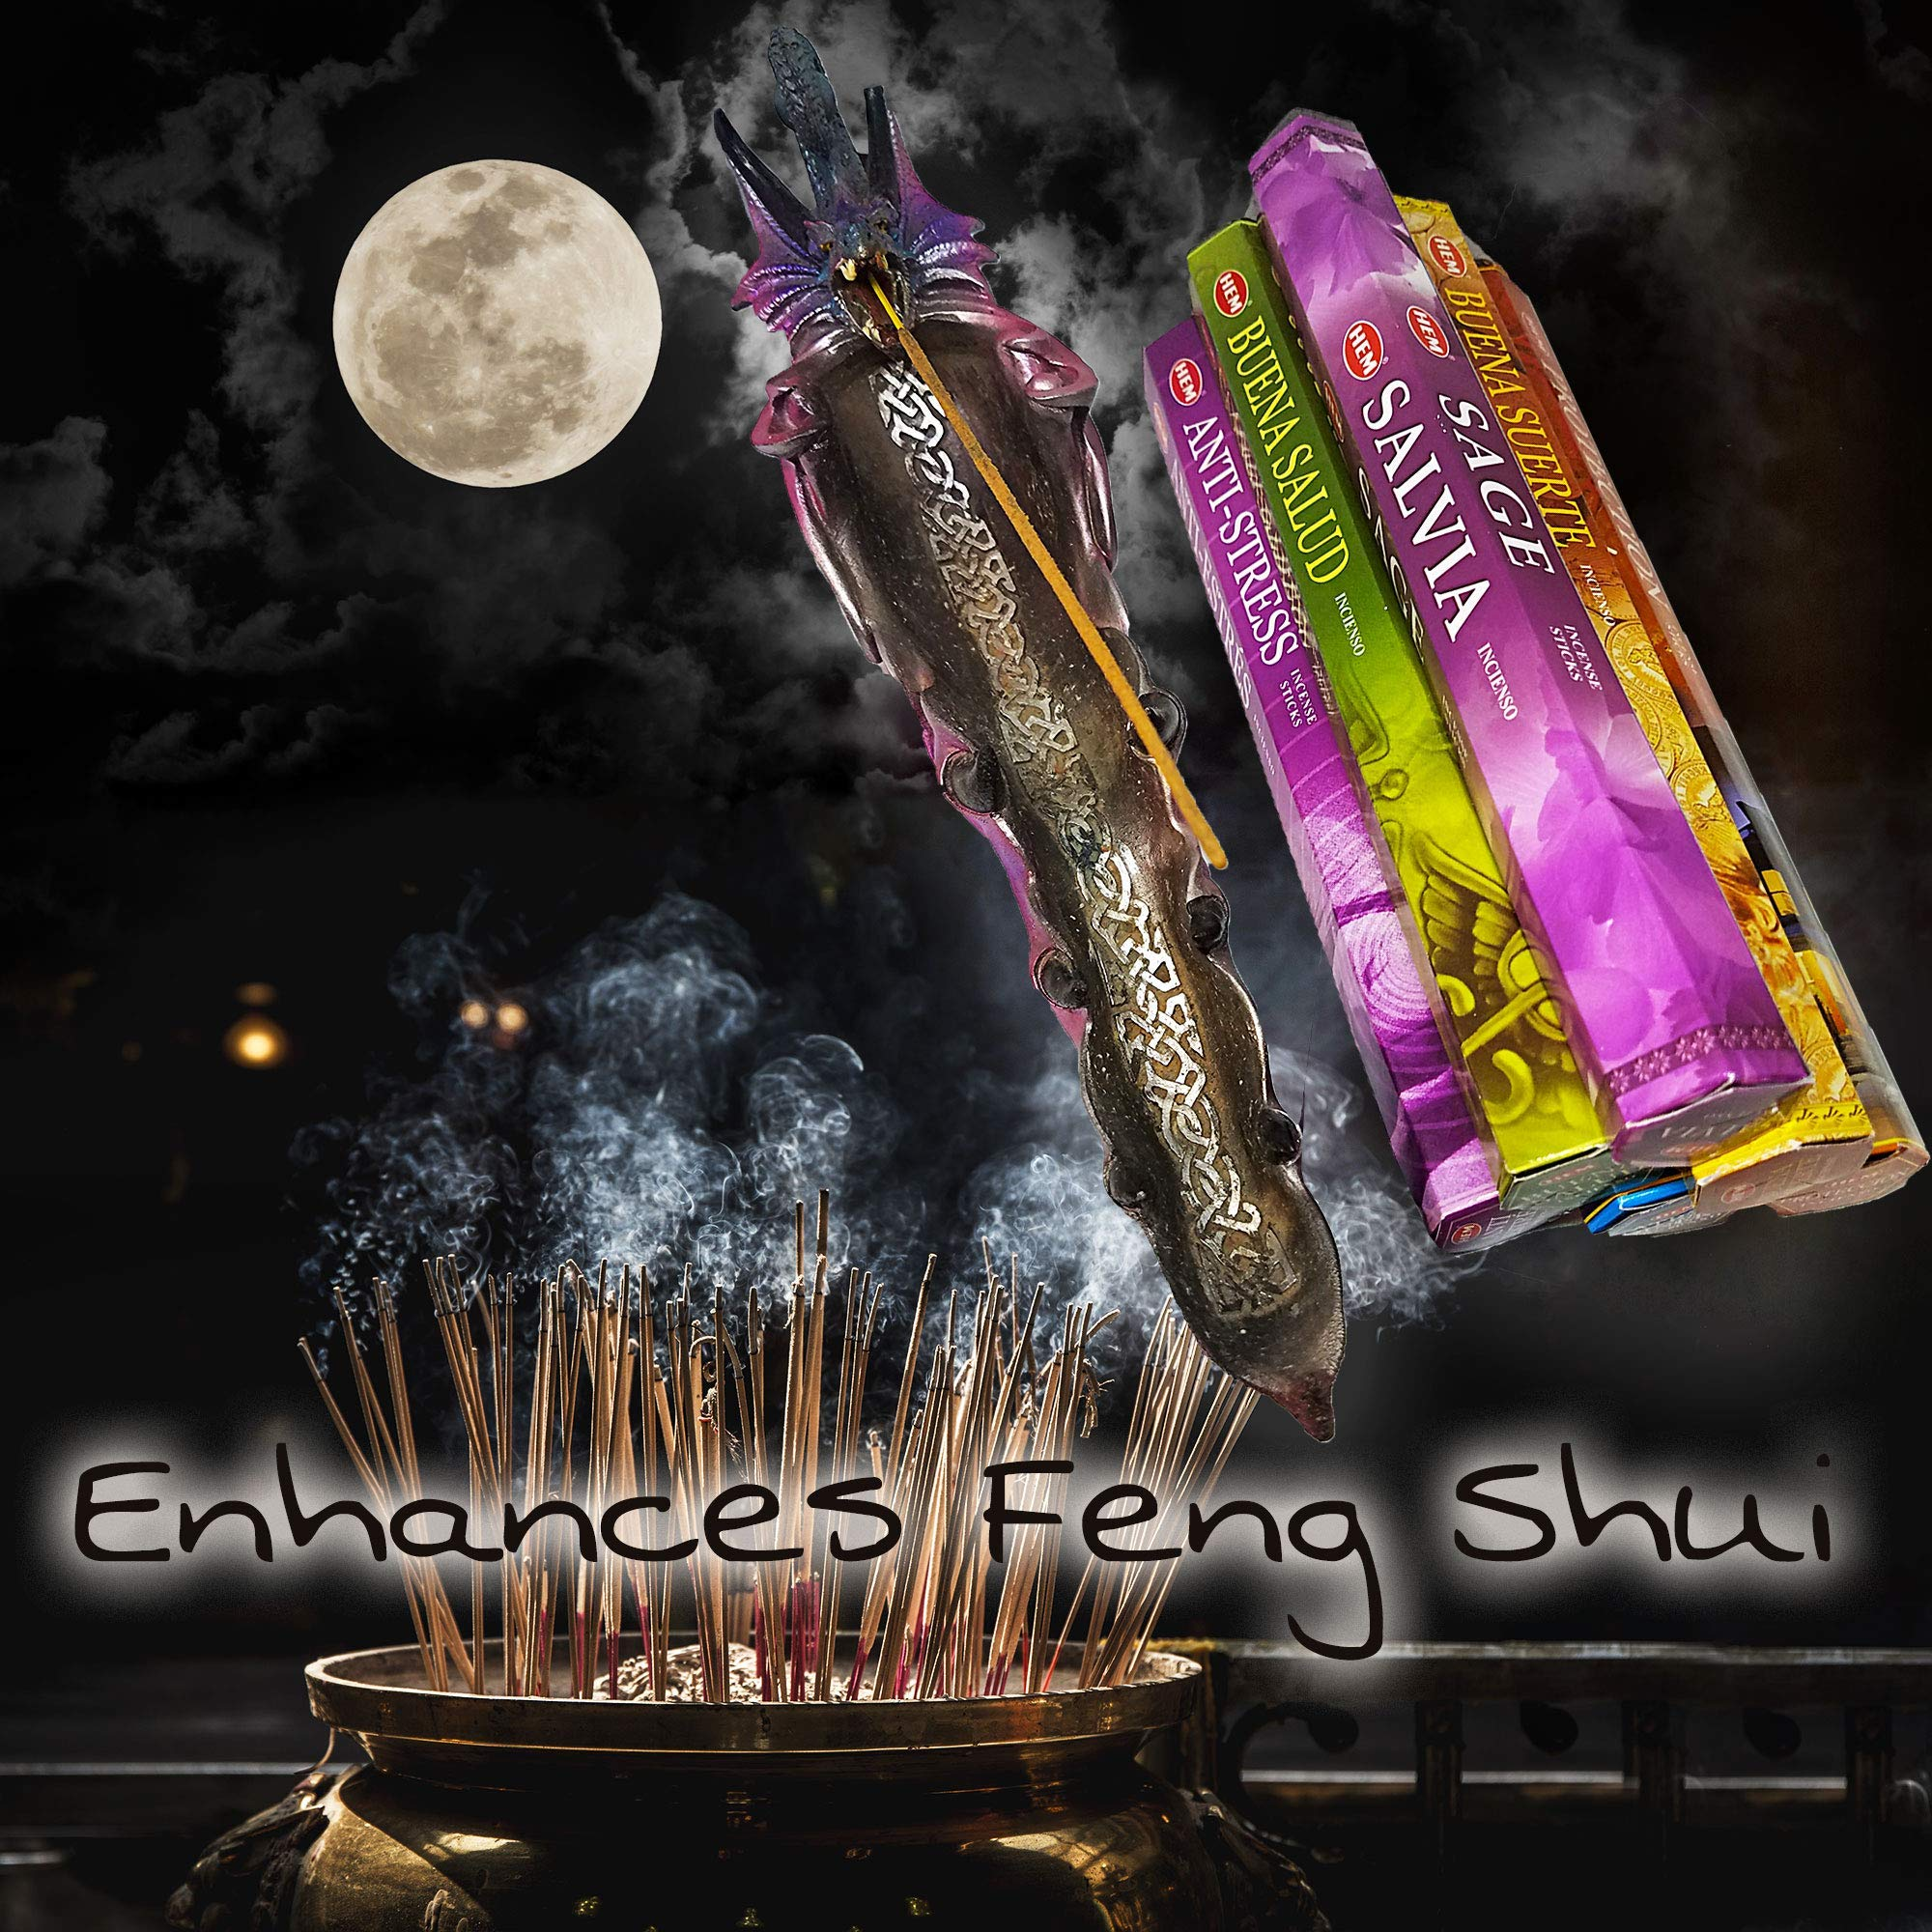 AurAmbiance New Age Feng Shui Incense Stick Spiritual Gifts Set; Inscents Sticks for Natural Healing & Protection by AurAmbiance (Image #7)